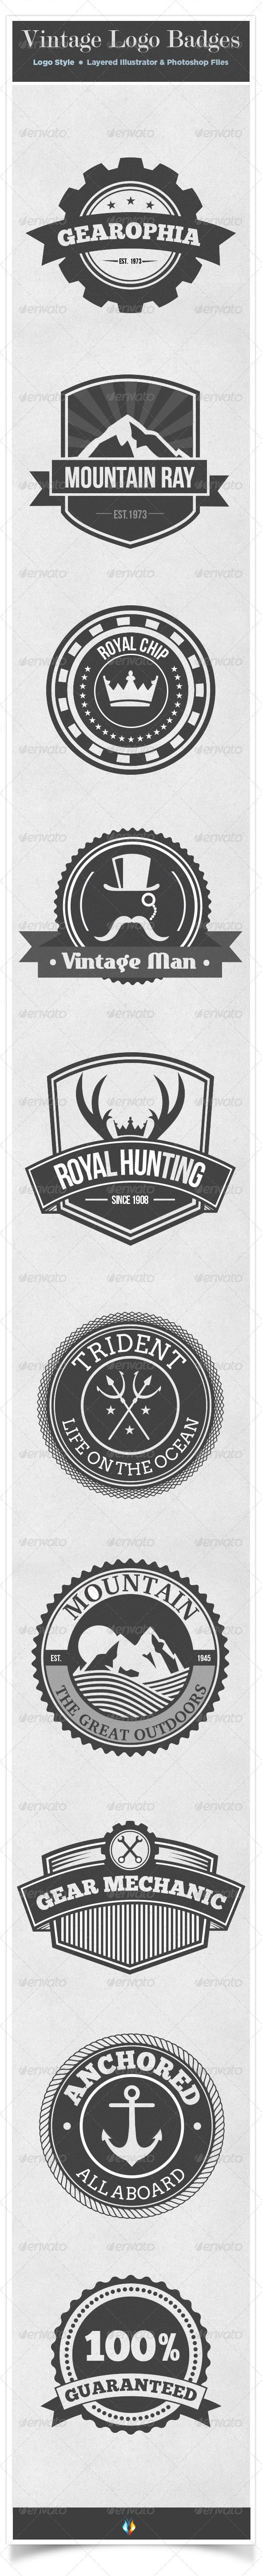 Vintage Logo Badges Set Template | Buy and Download: http://graphicriver.net/item/vintage-logo-badges-set/7999006?WT.ac=category_thumb&WT.z_author=overstocklogo&ref=ksioks